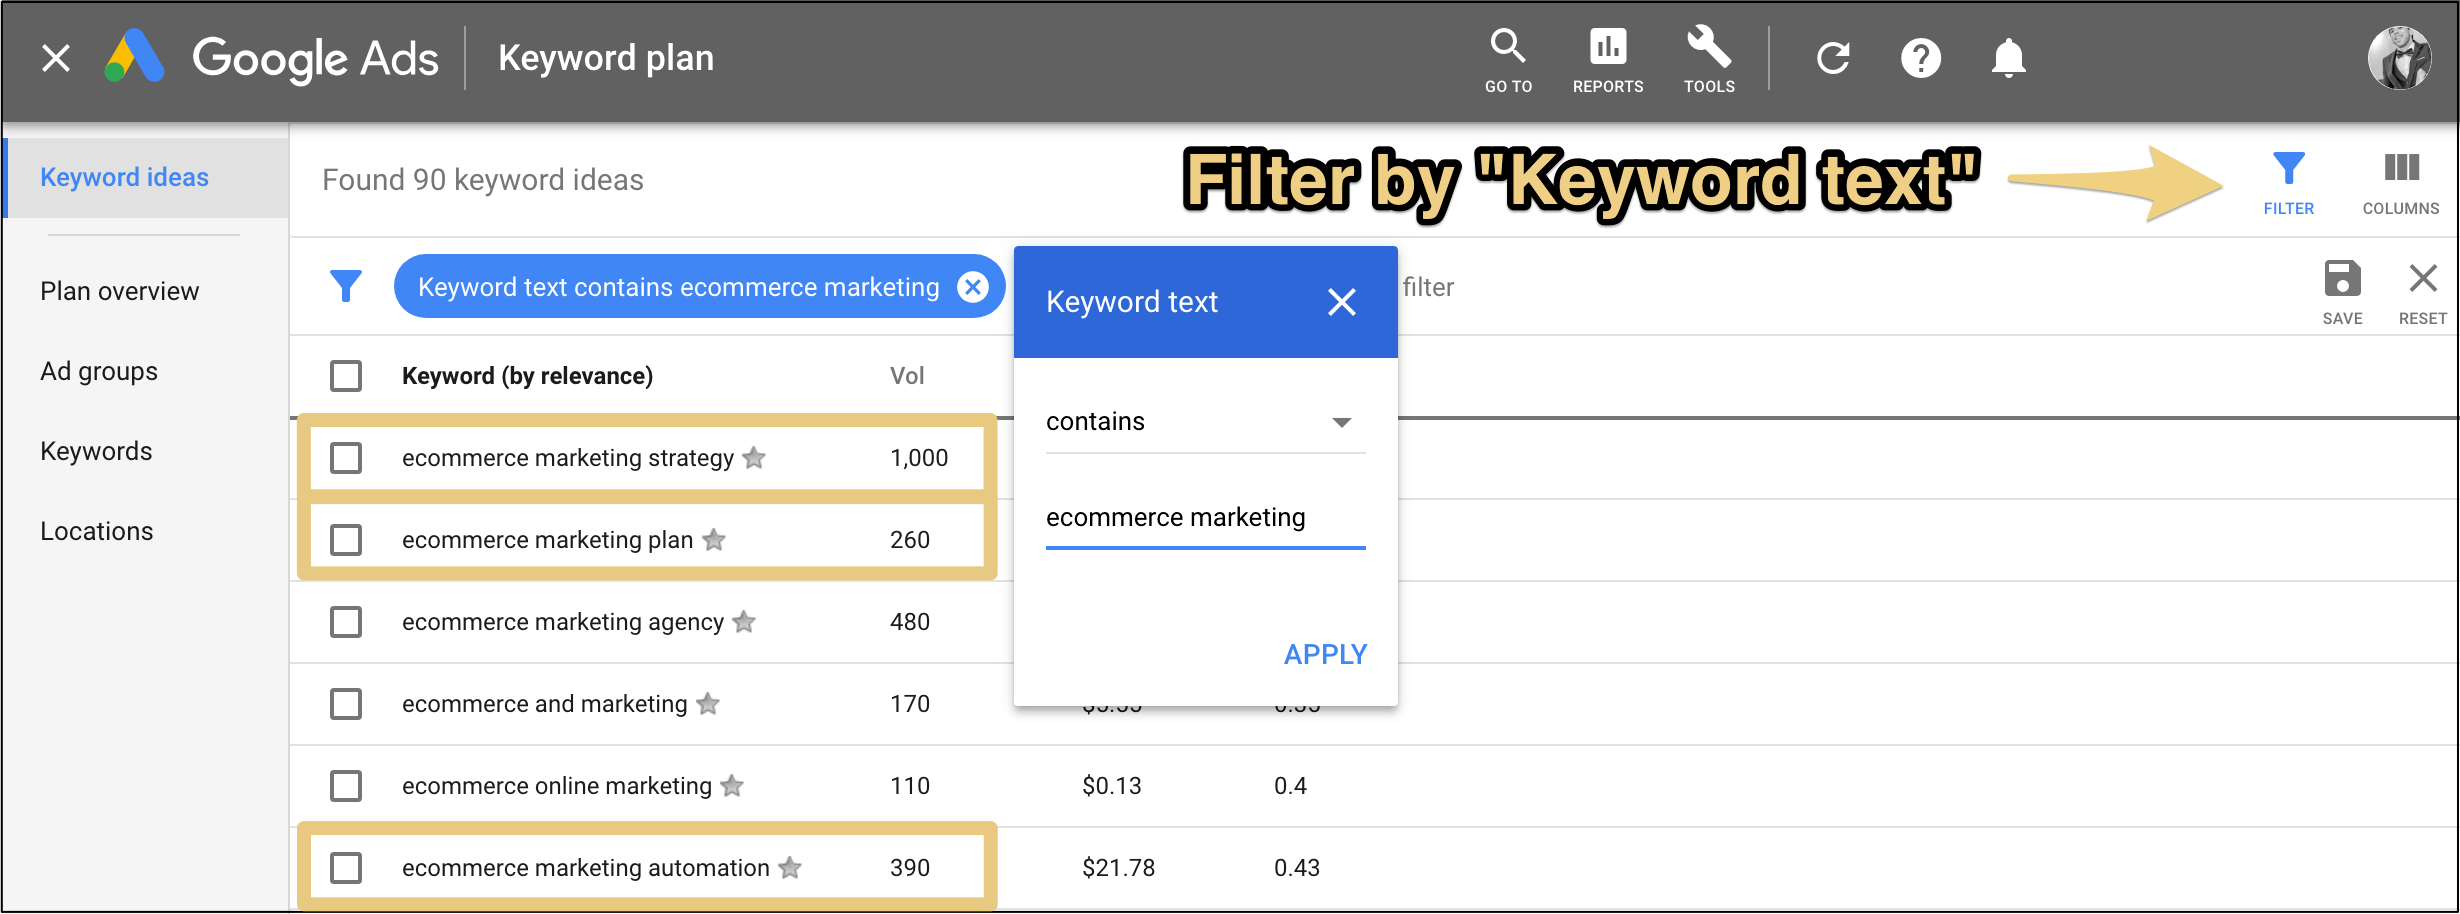 google keyword planner with keyword text containing ecommerce marketing